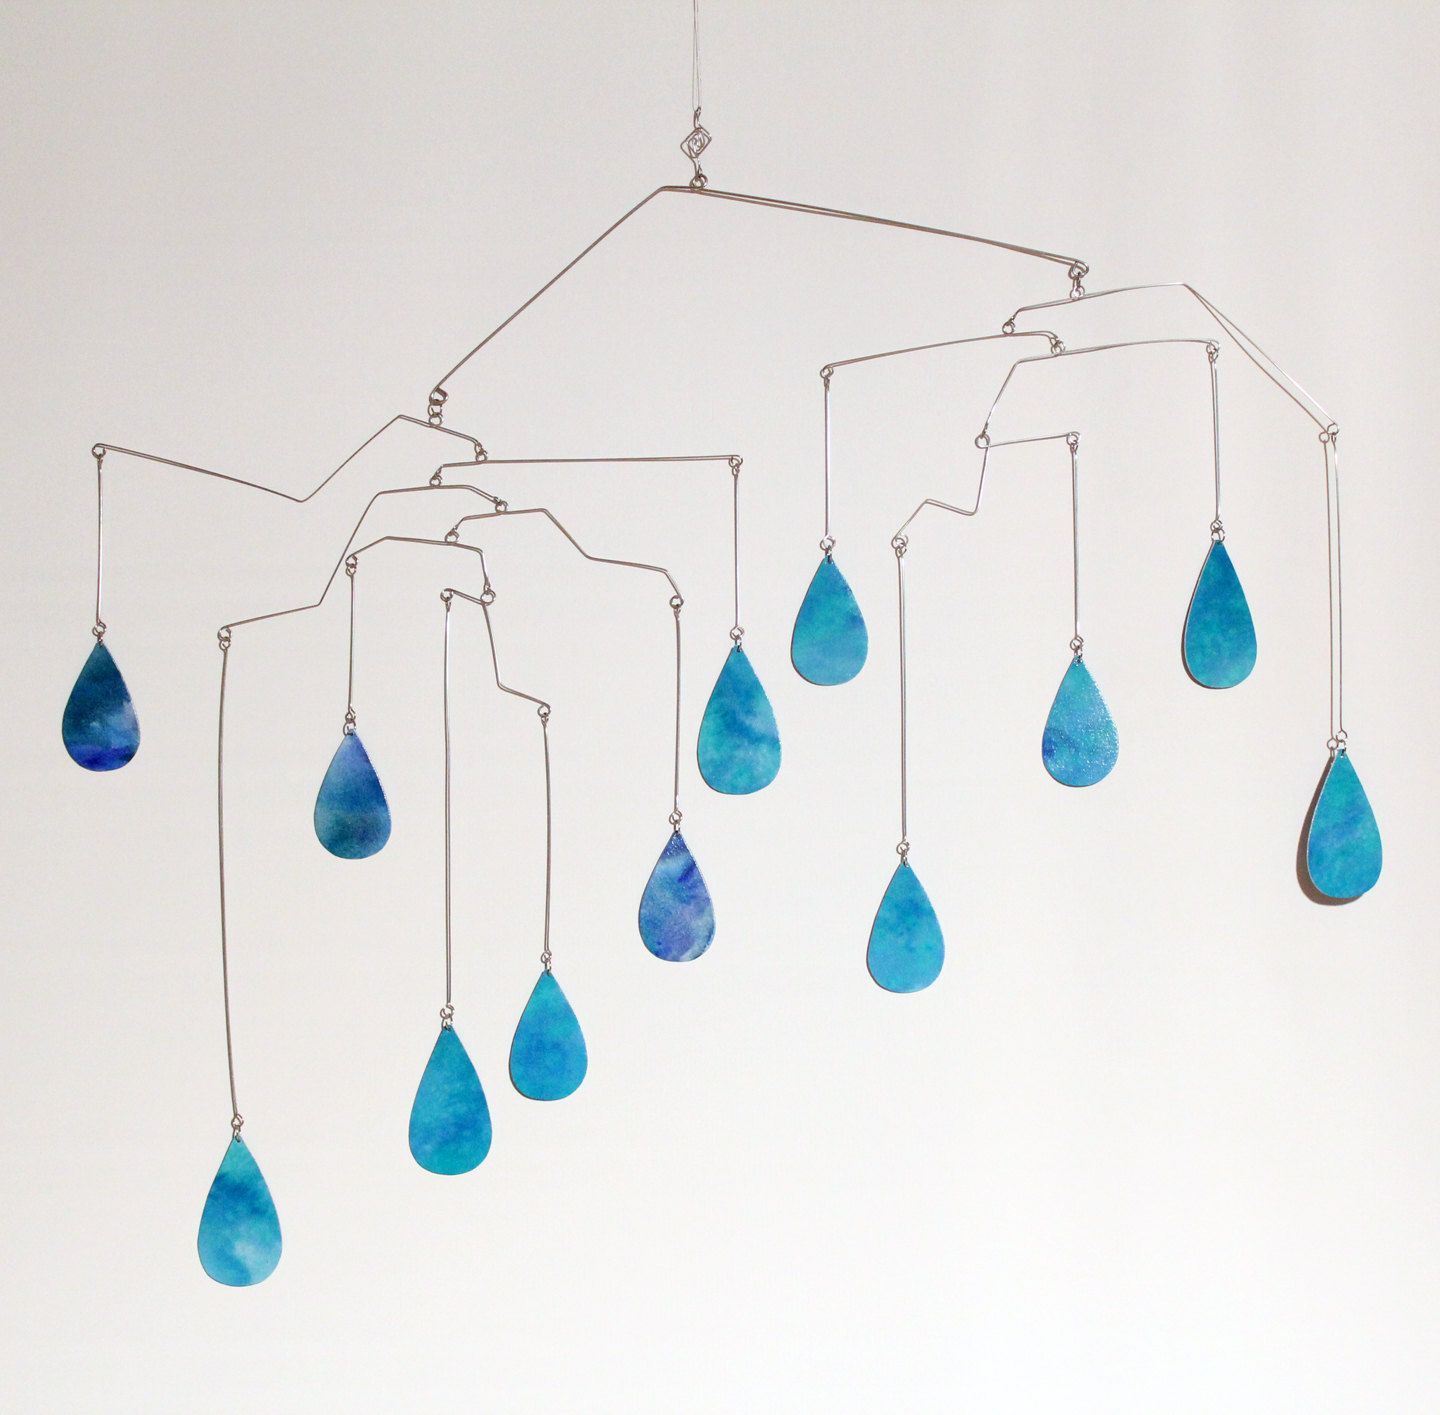 Rain Drops Art Mobile Cool Winter Hanging Mobiles Aqua